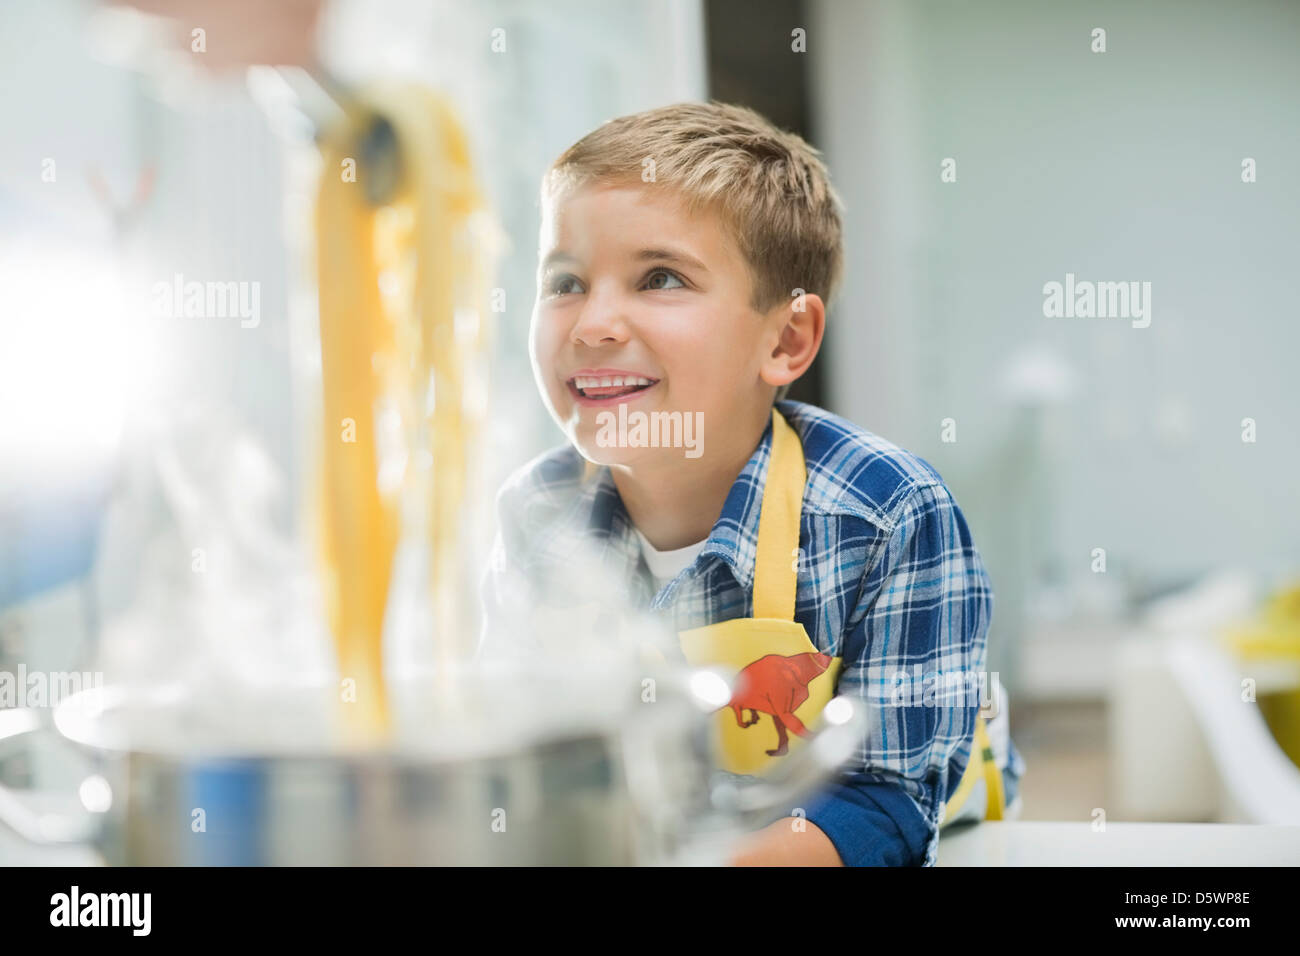 Boy smiling in kitchen Stock Photo